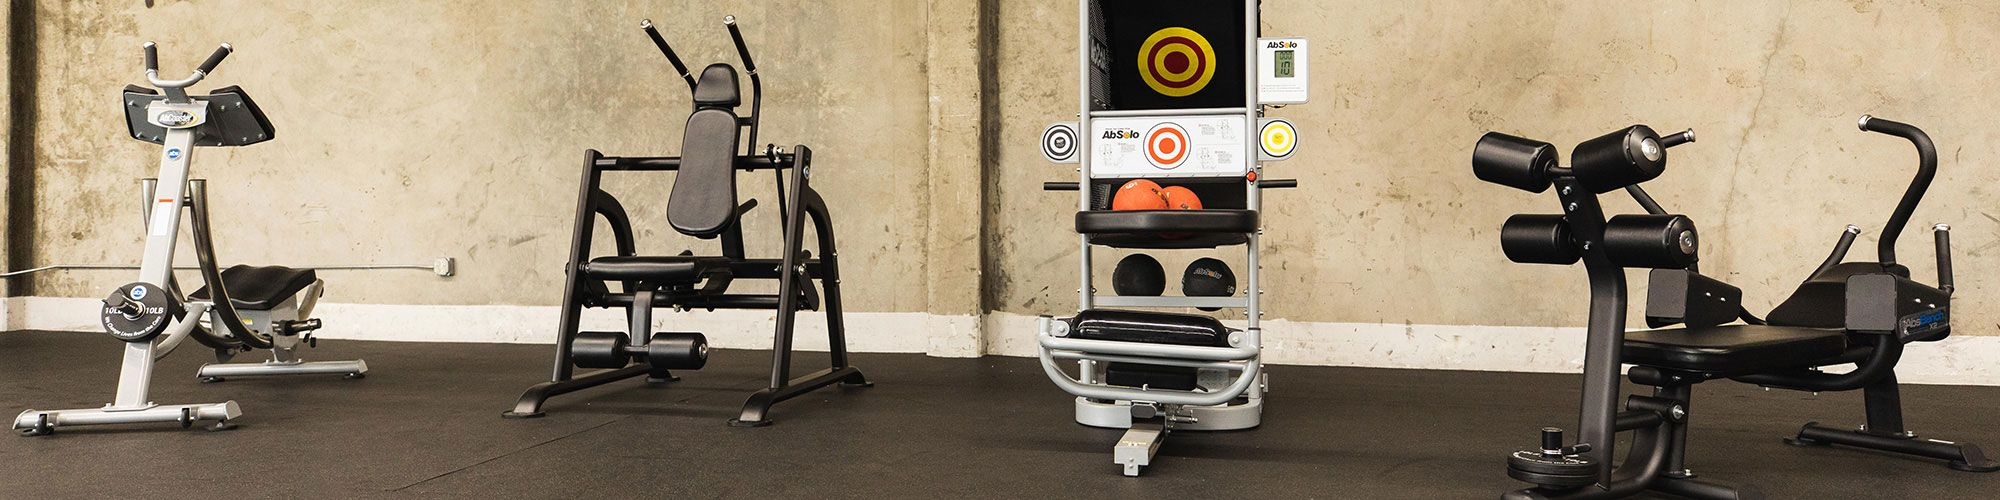 Gym design and fitness equipment from CYC Fitness